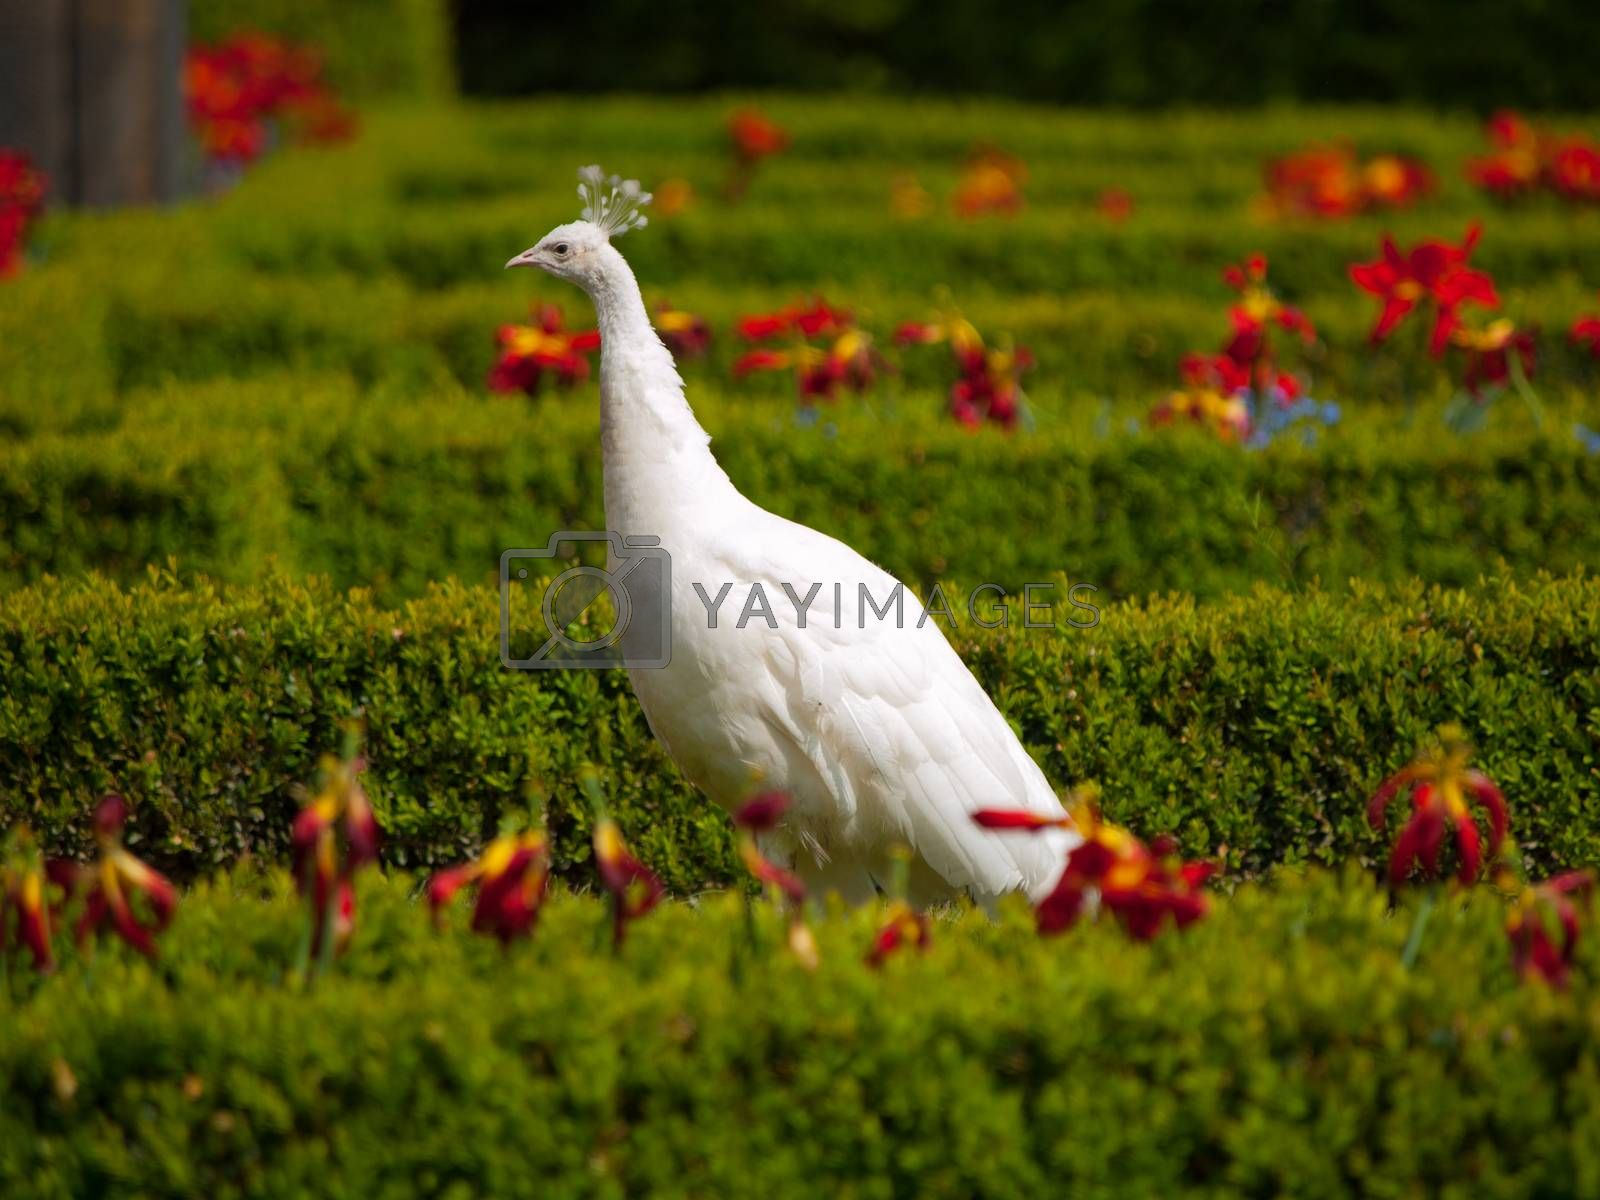 Royalty free image of White peacock by pyty